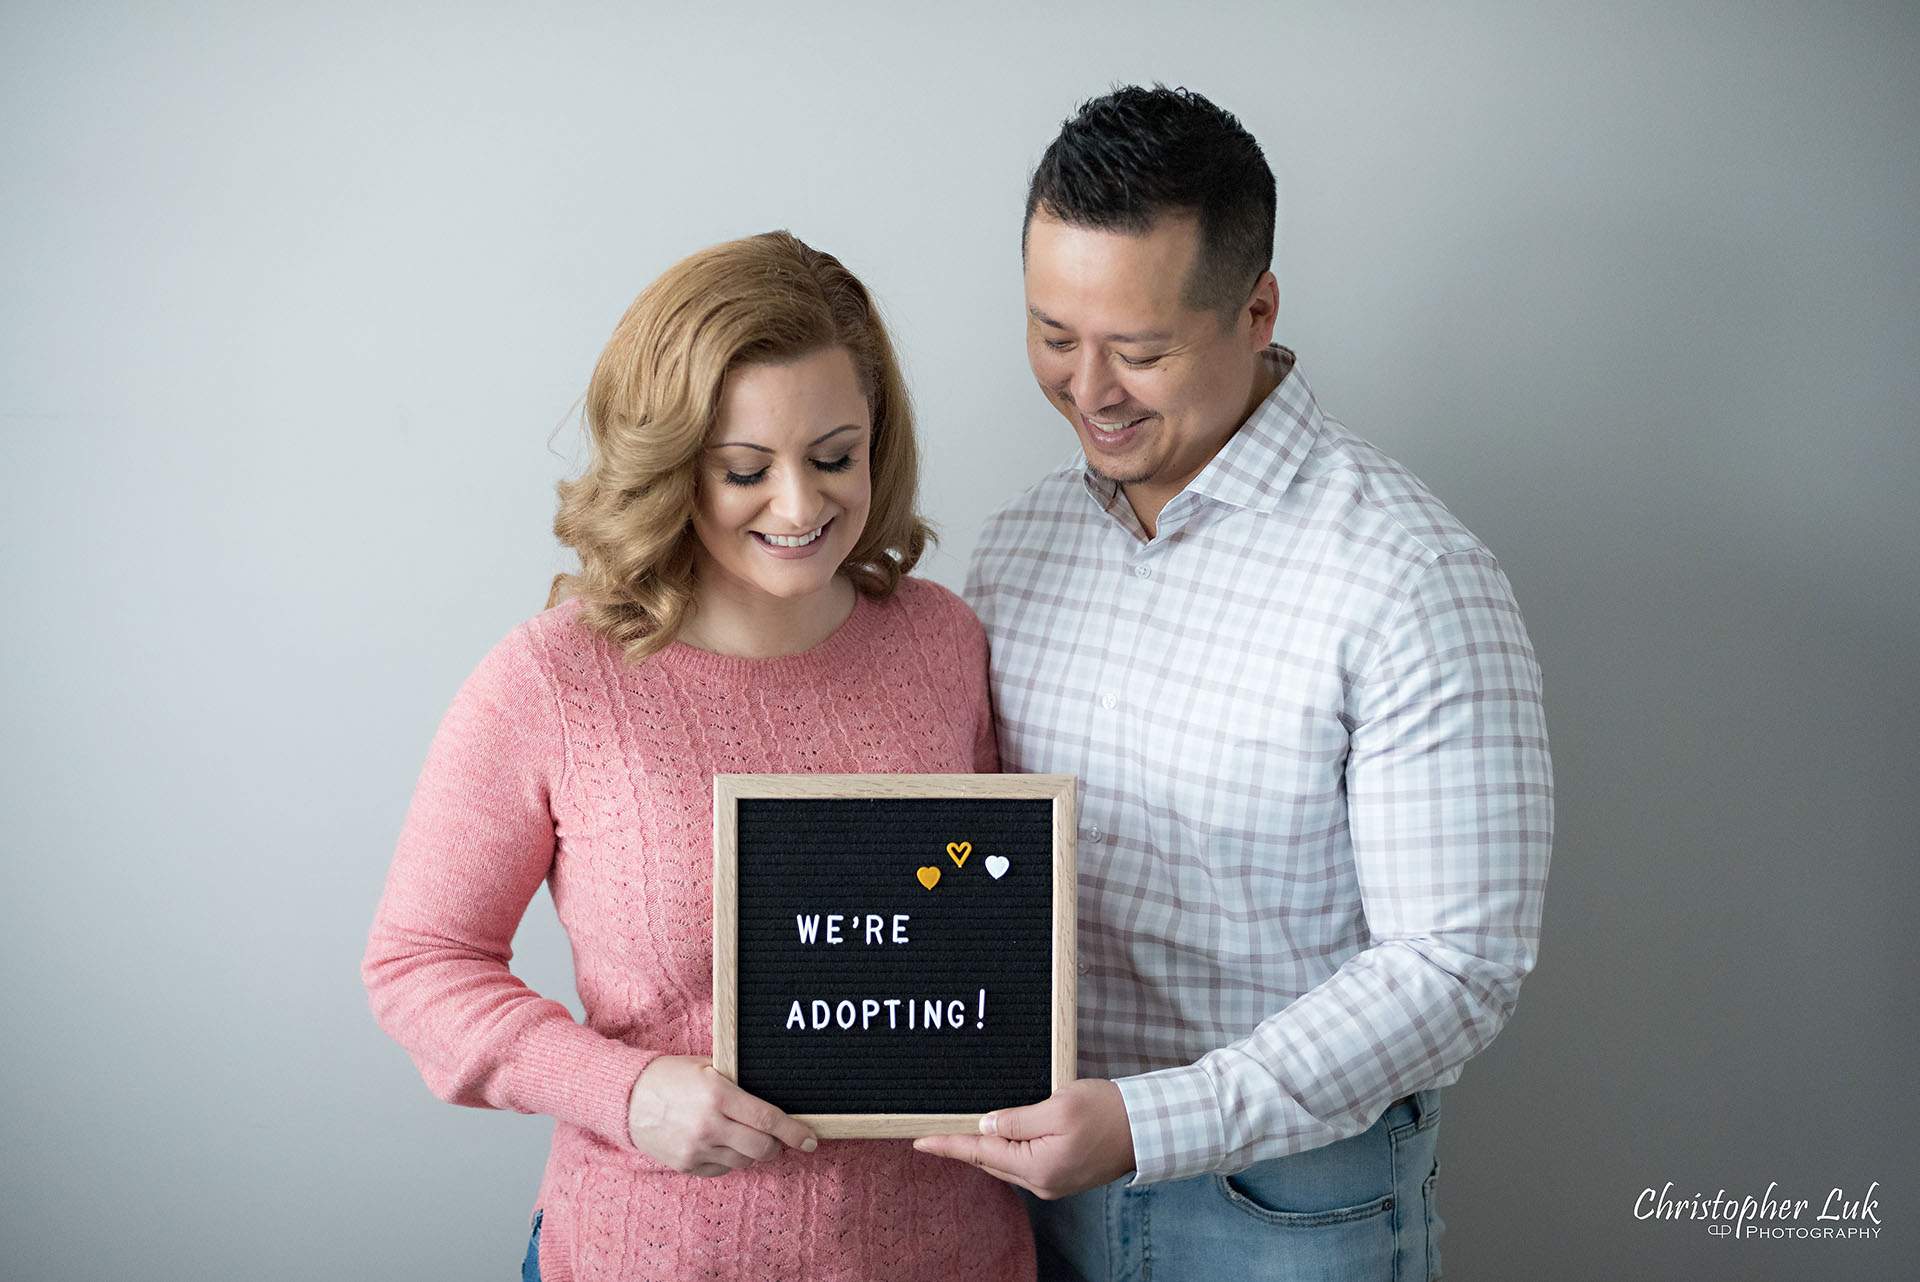 Christopher Luk Toronto Markham Family Adoption LifeBook Photographer Pictures Photos Children Session Parents We're Adopting Letter Board Sign Smile